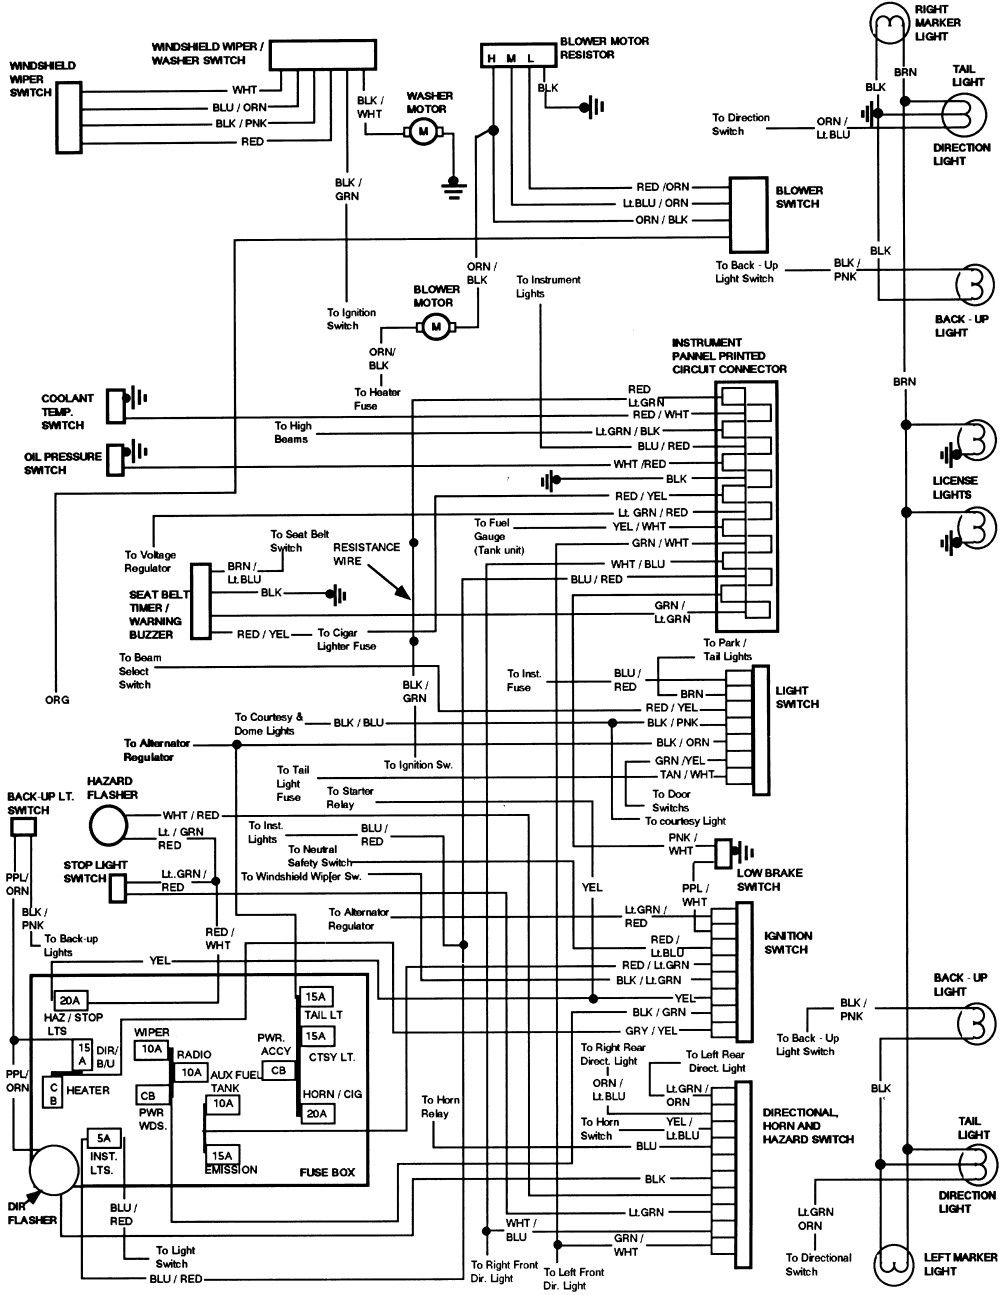 2001 Ford F150 Wiring Diagram New In 2020 Ford F150 Diagram Design F150